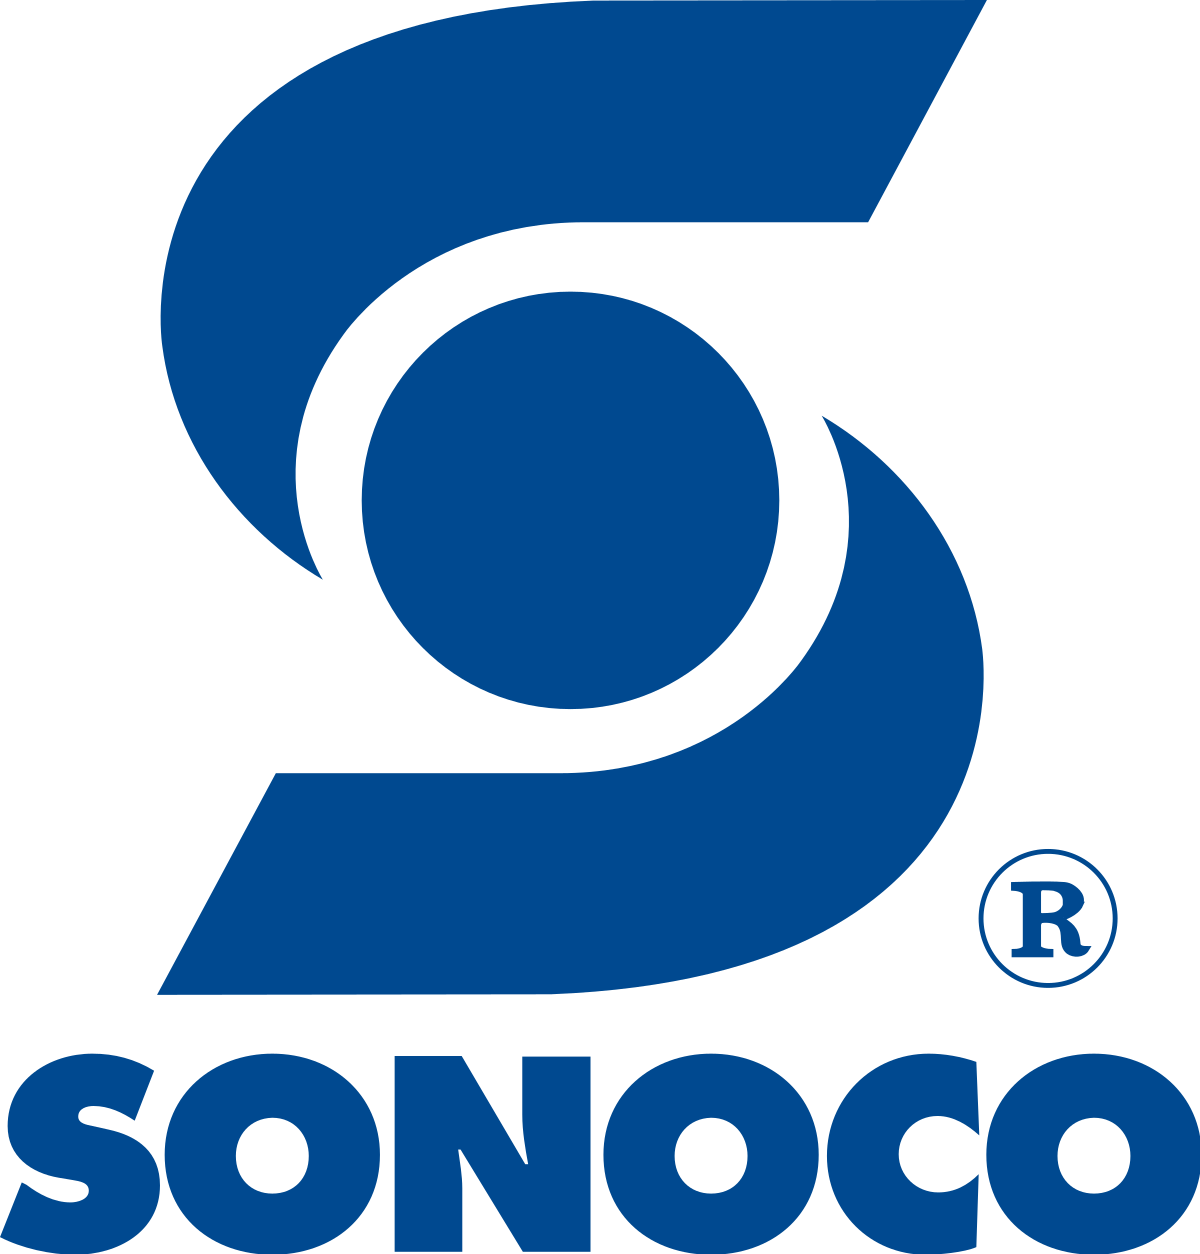 Sonoco Products Company HR Structure Dilemma